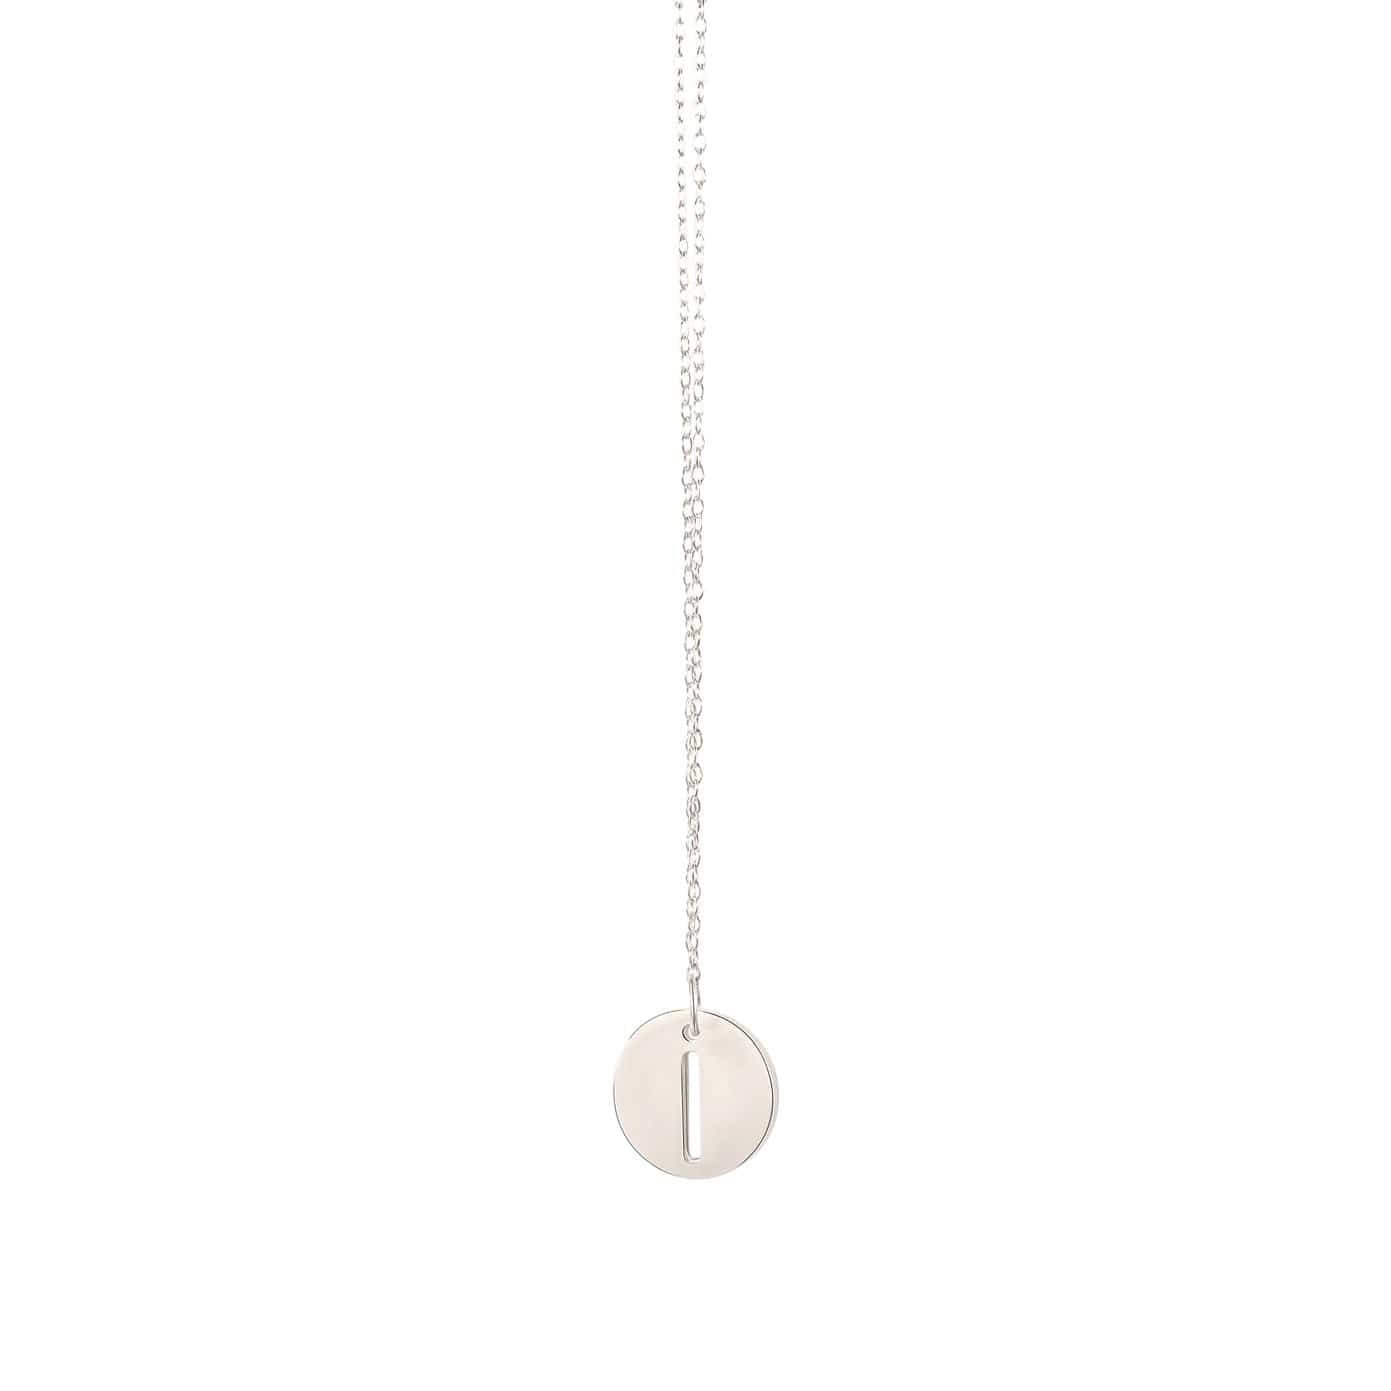 Vertexx Necklaces Central Pendant Necklace